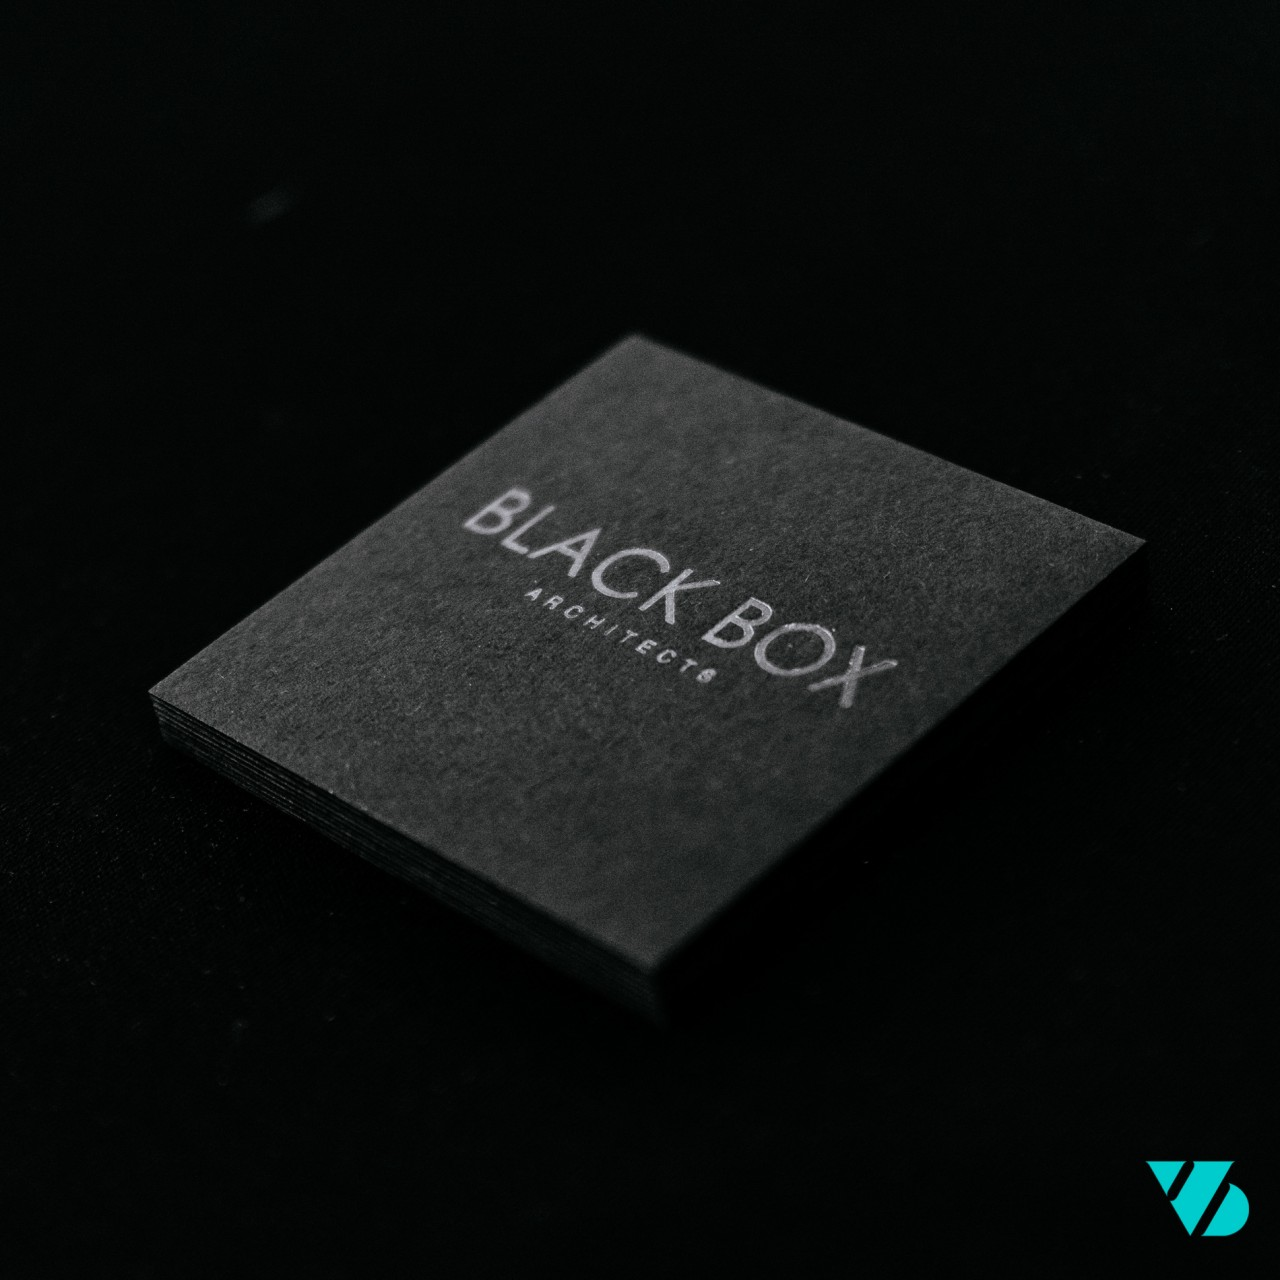 Blackbox business card front